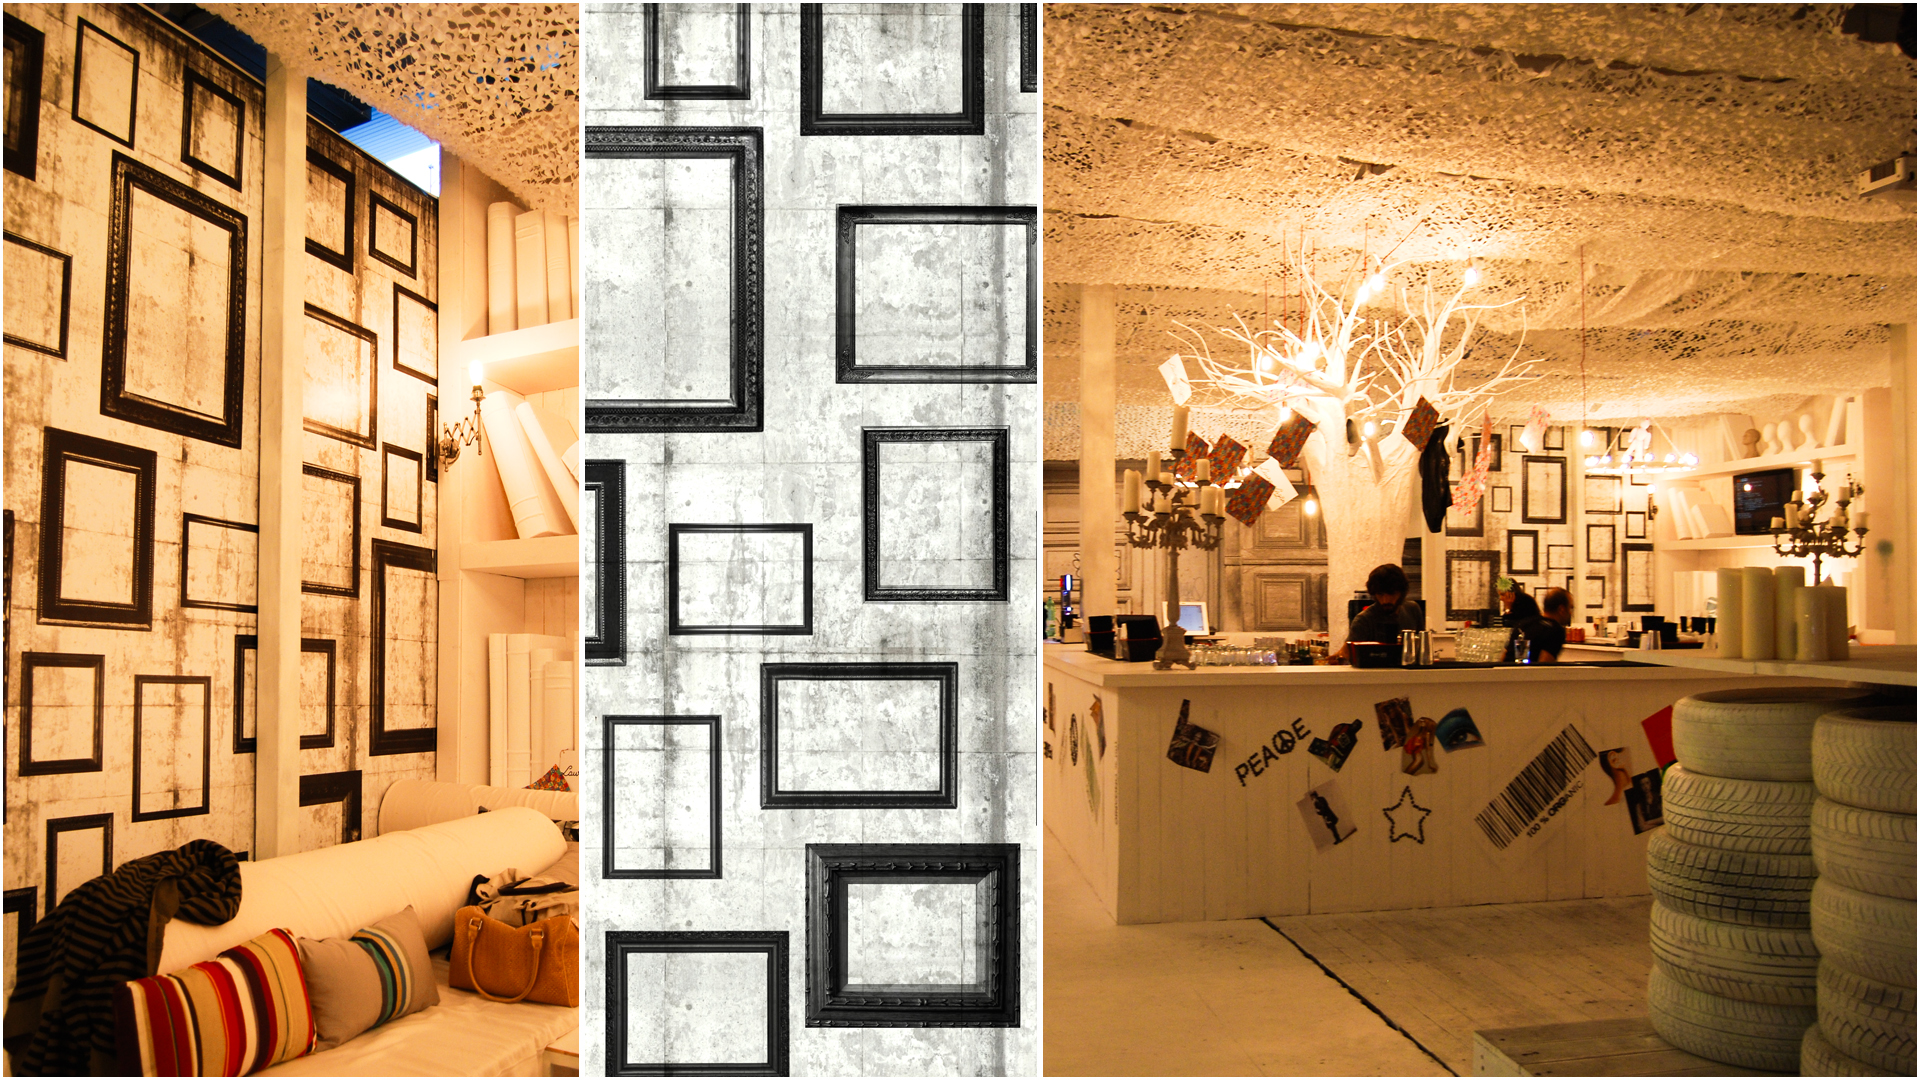 02-proiecte-design-interior-elemente-grafice-lc43studio-club-gaia-mamaia